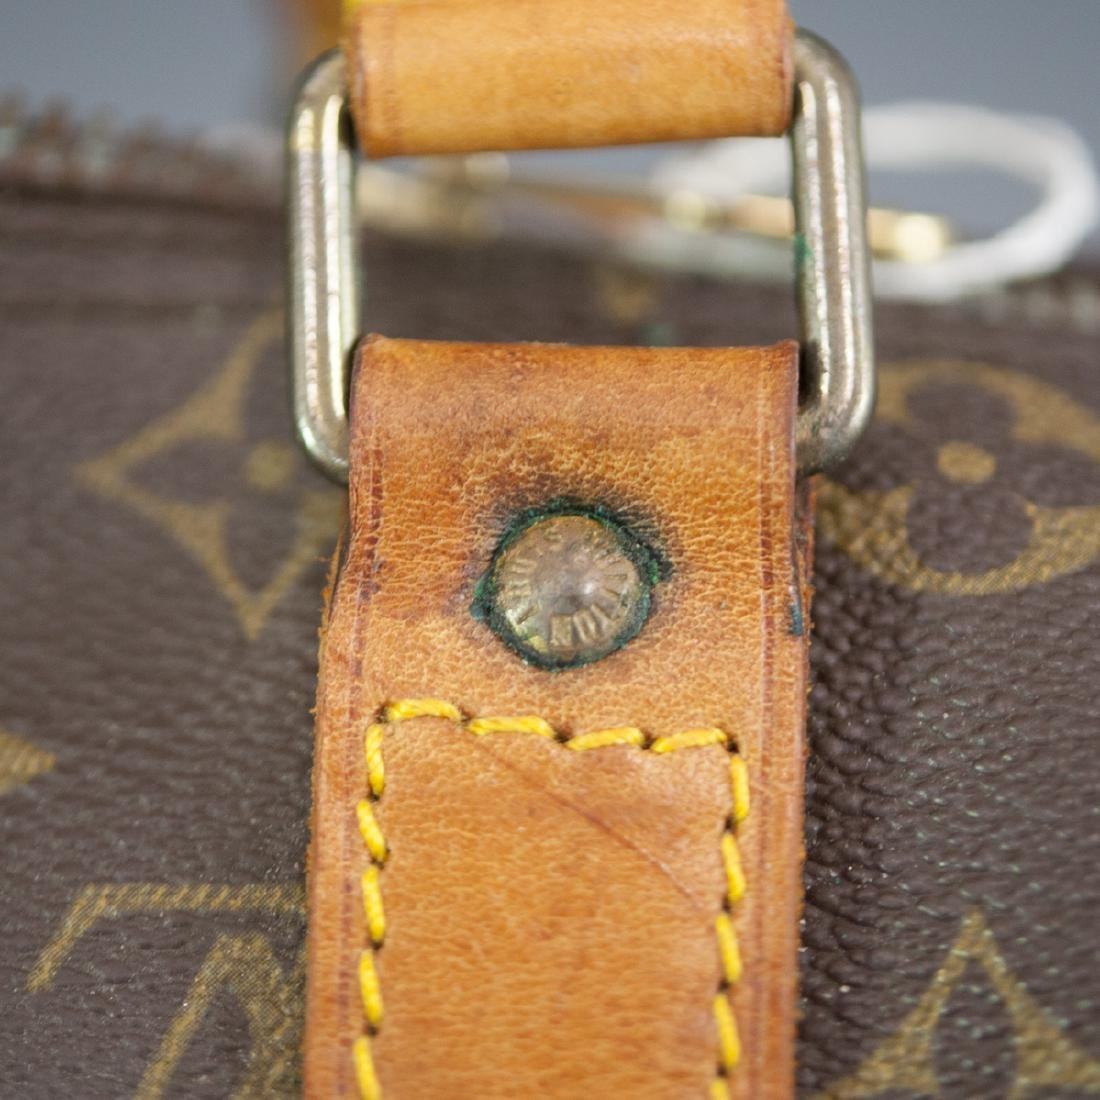 Louis Vuitton Canvas & Leather Keepall Bag - 4